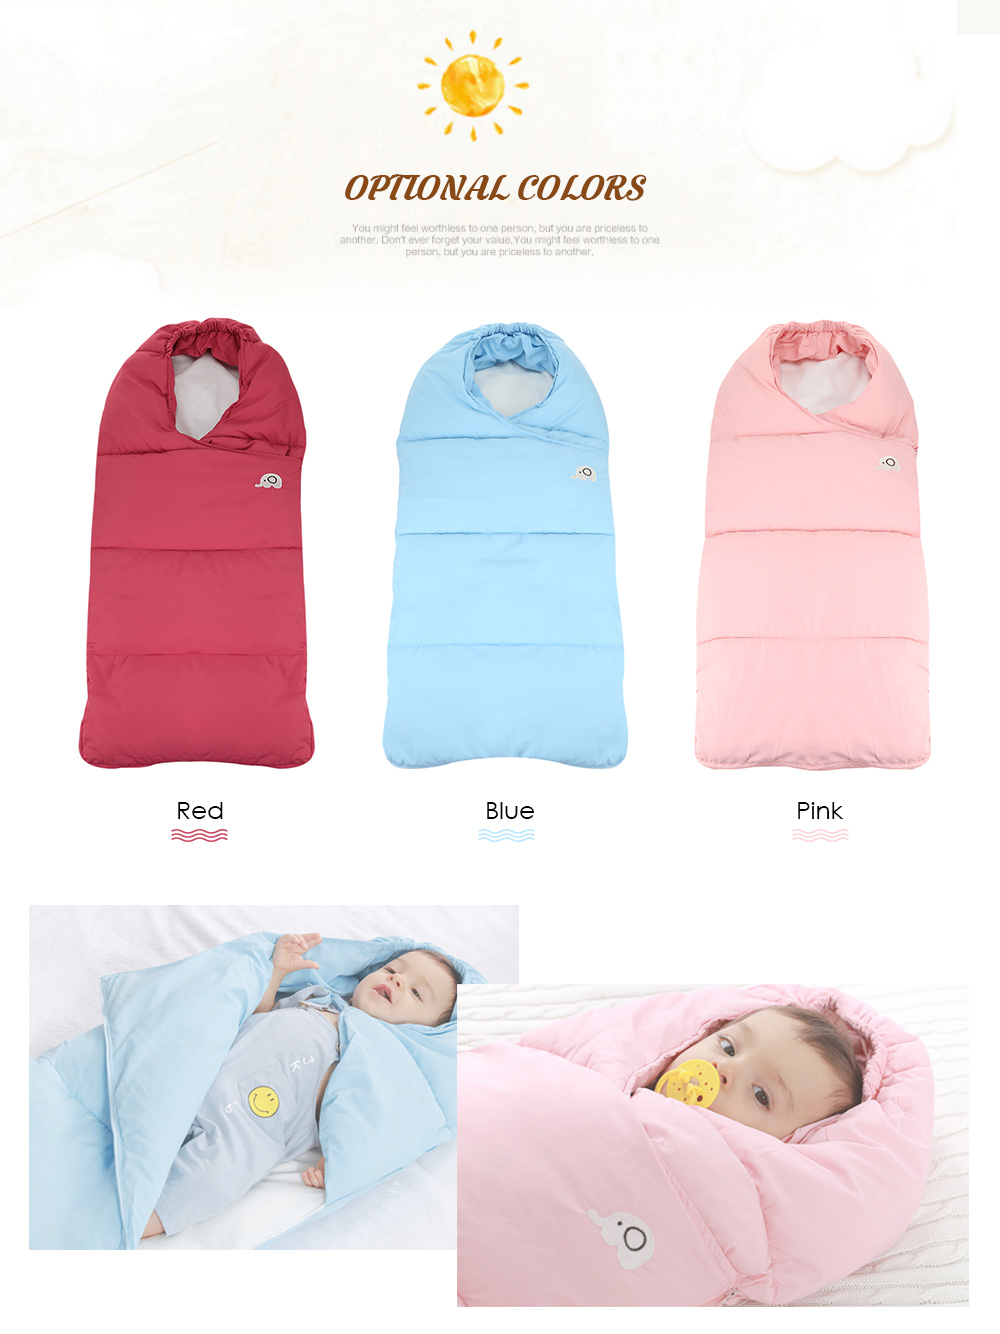 Activity & Gear Mother & Kids Creative Baby Stroller Sleeping Bag Warm Swaddle Quilt Blanket Wrap Sleep Sack Stroller Accessories Anti Cold Child Baby Winter Leg Cover